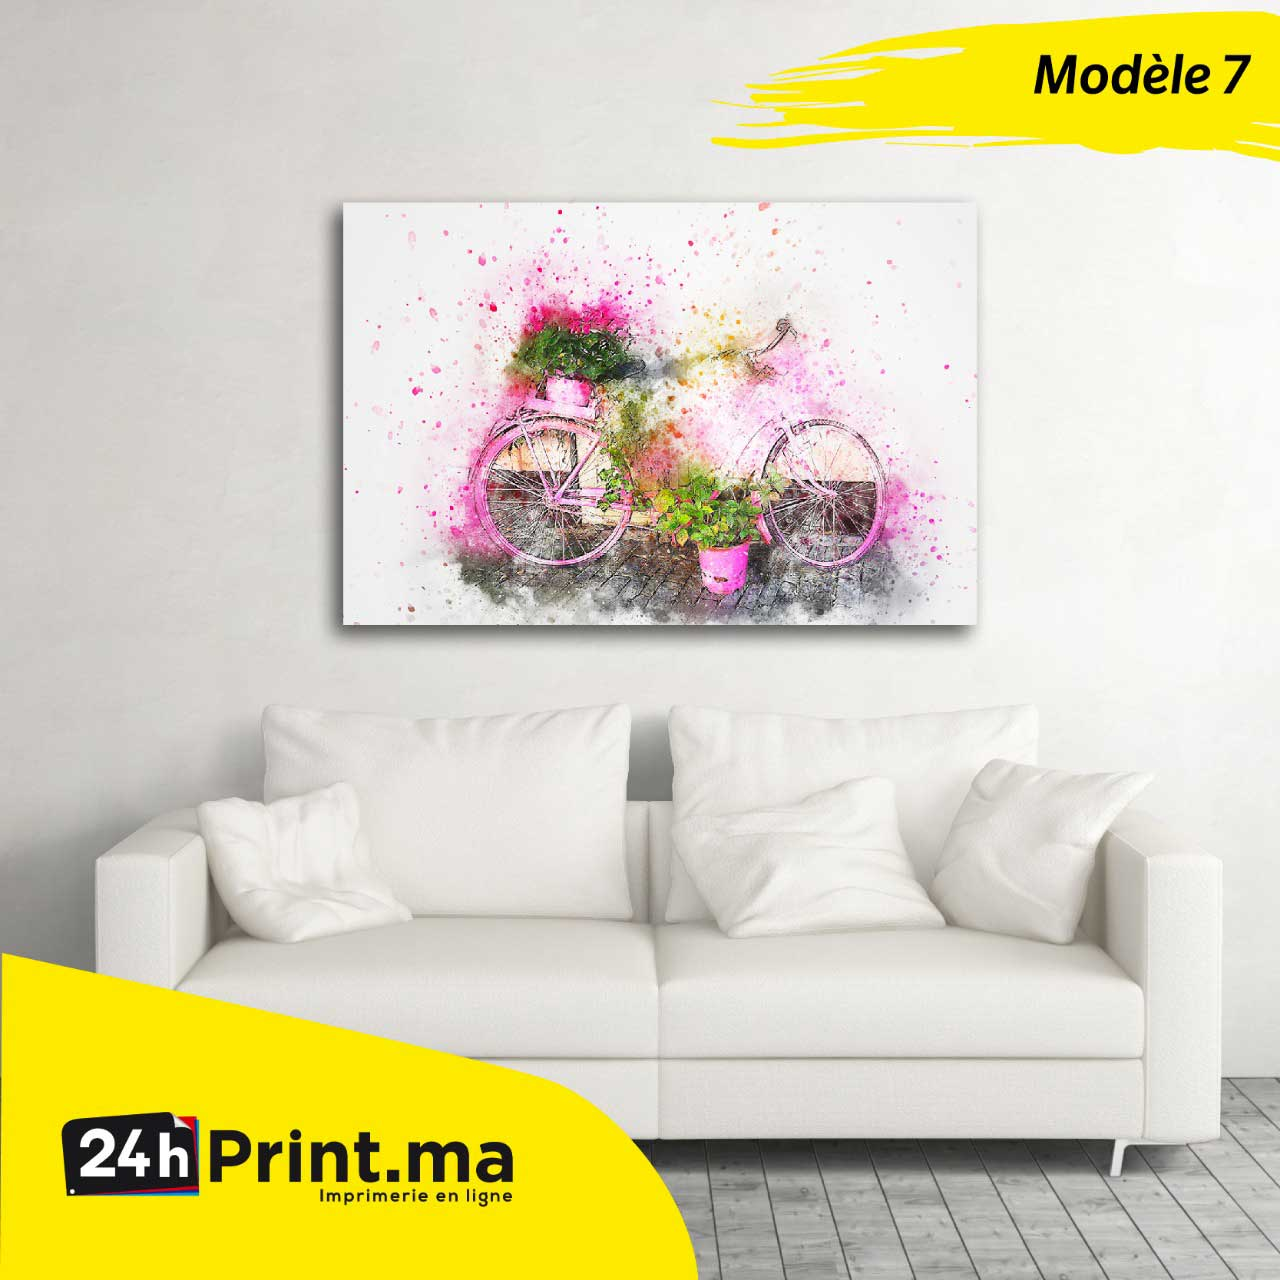 https://www.24hprint.ma/images/products_gallery_images/757.jpg